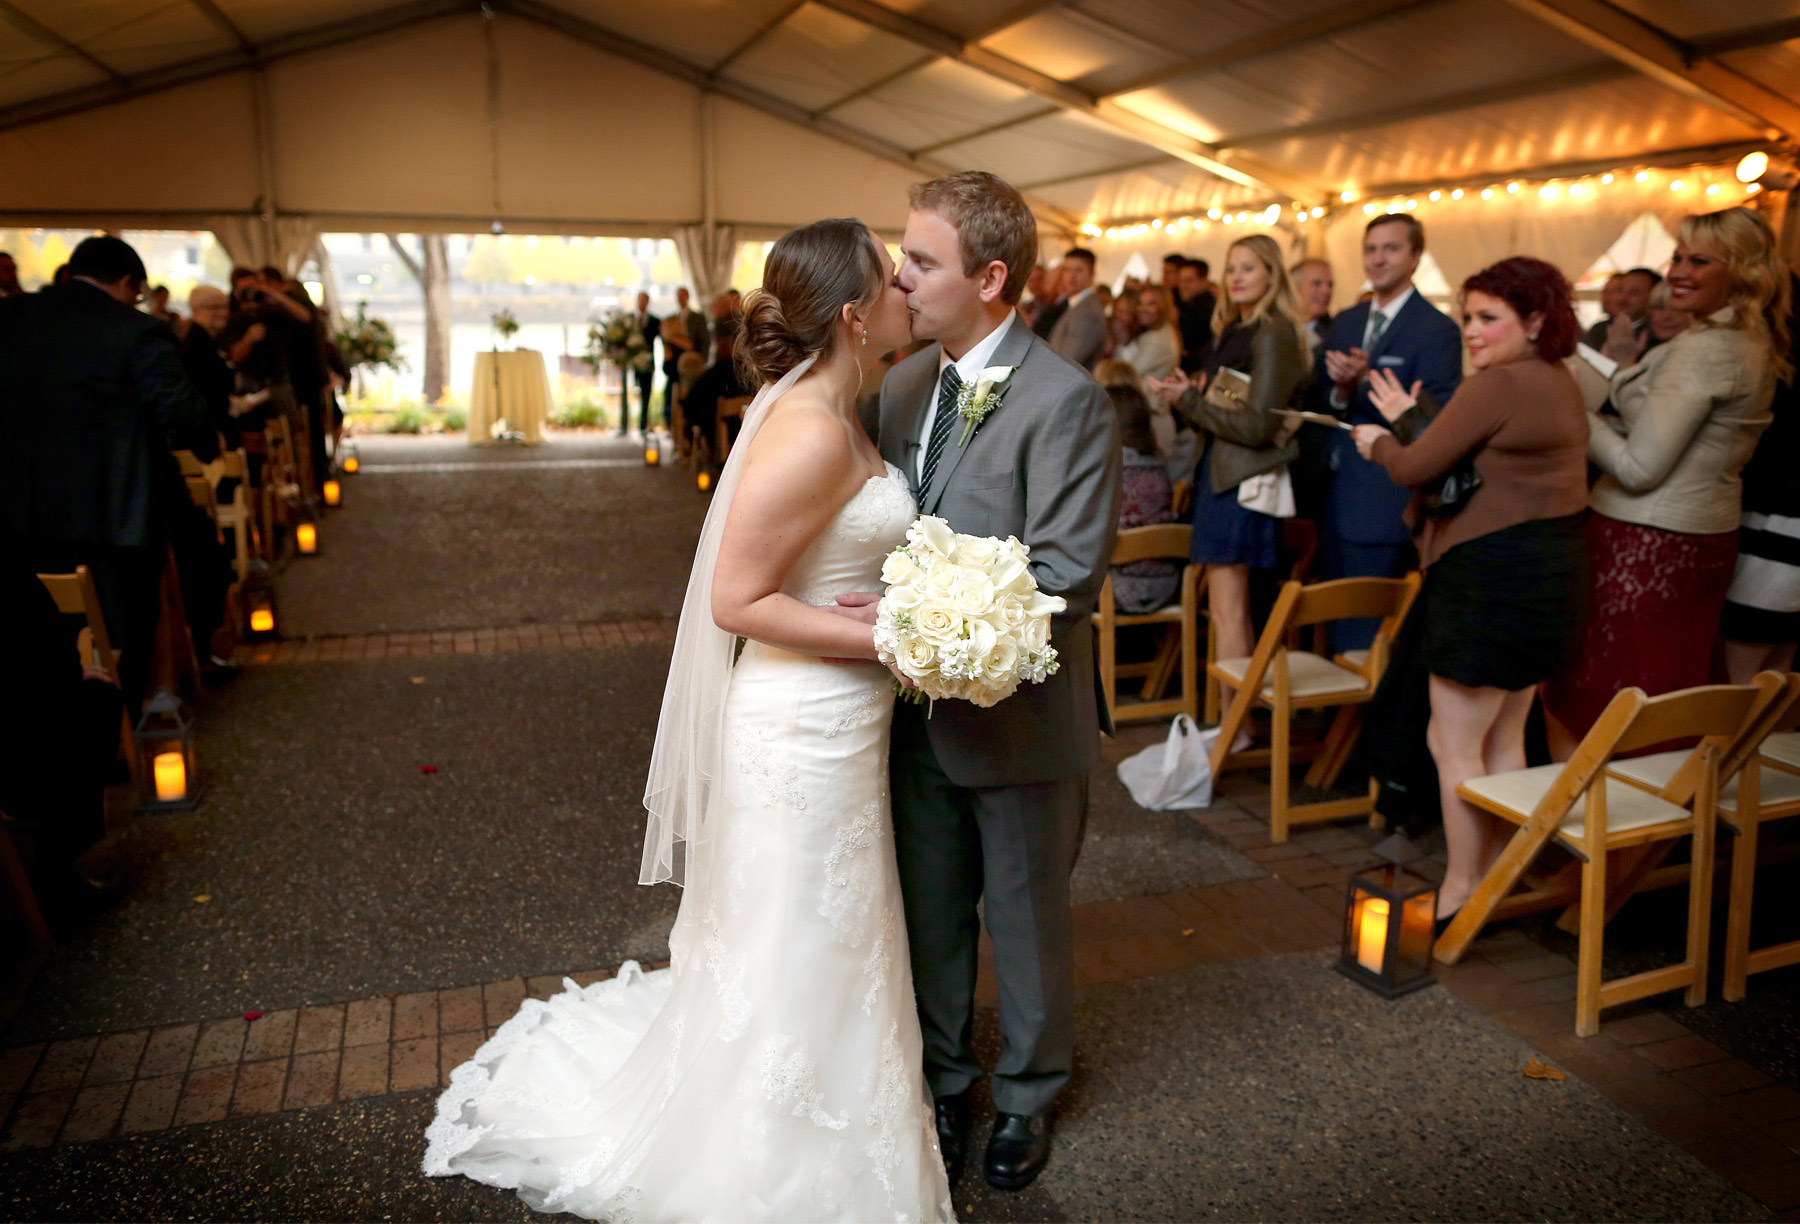 08-Minneapolis-Minnesota-Wedding-Photography-Downtown-Rain-Nicollet-Island-Pavilion-Outdoor-Ceremony-Kalley-and-Ben.jpg